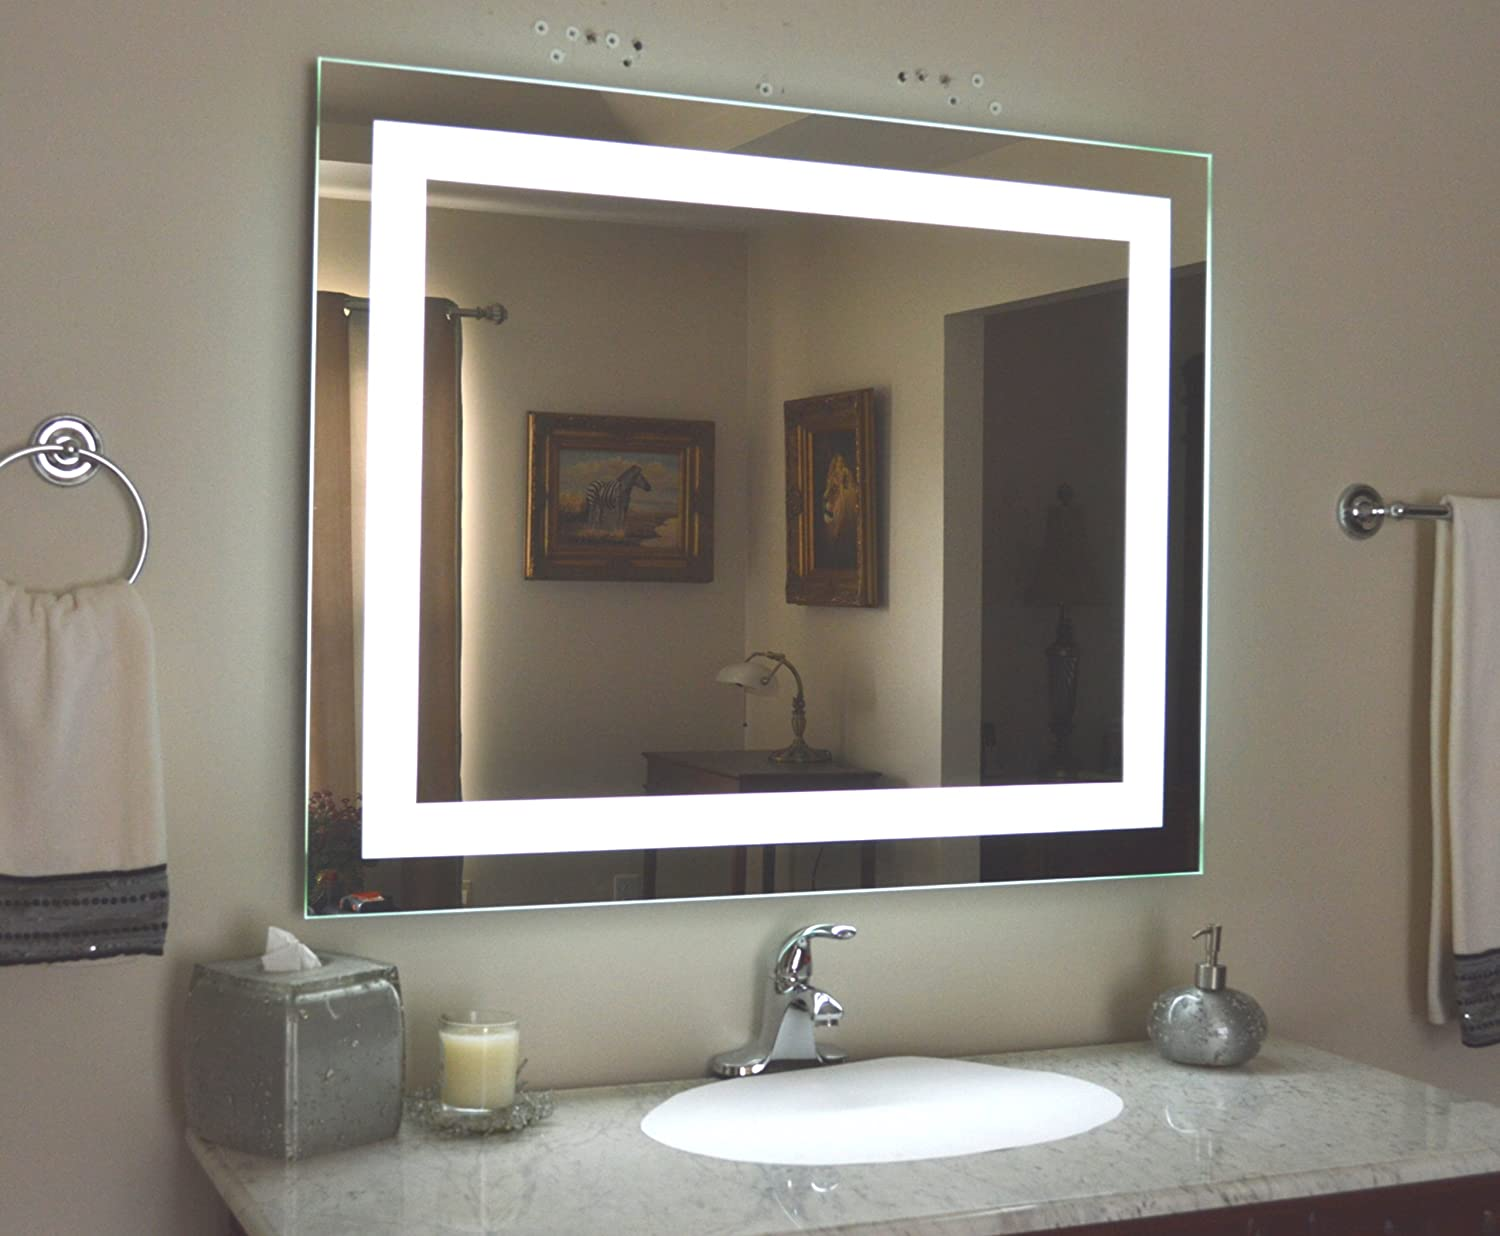 diy lighted vanity mirror. Amazon com  Wall Mounted Lighted Vanity Mirror LED MAM84032 Commercial Grade 40 Home Kitchen